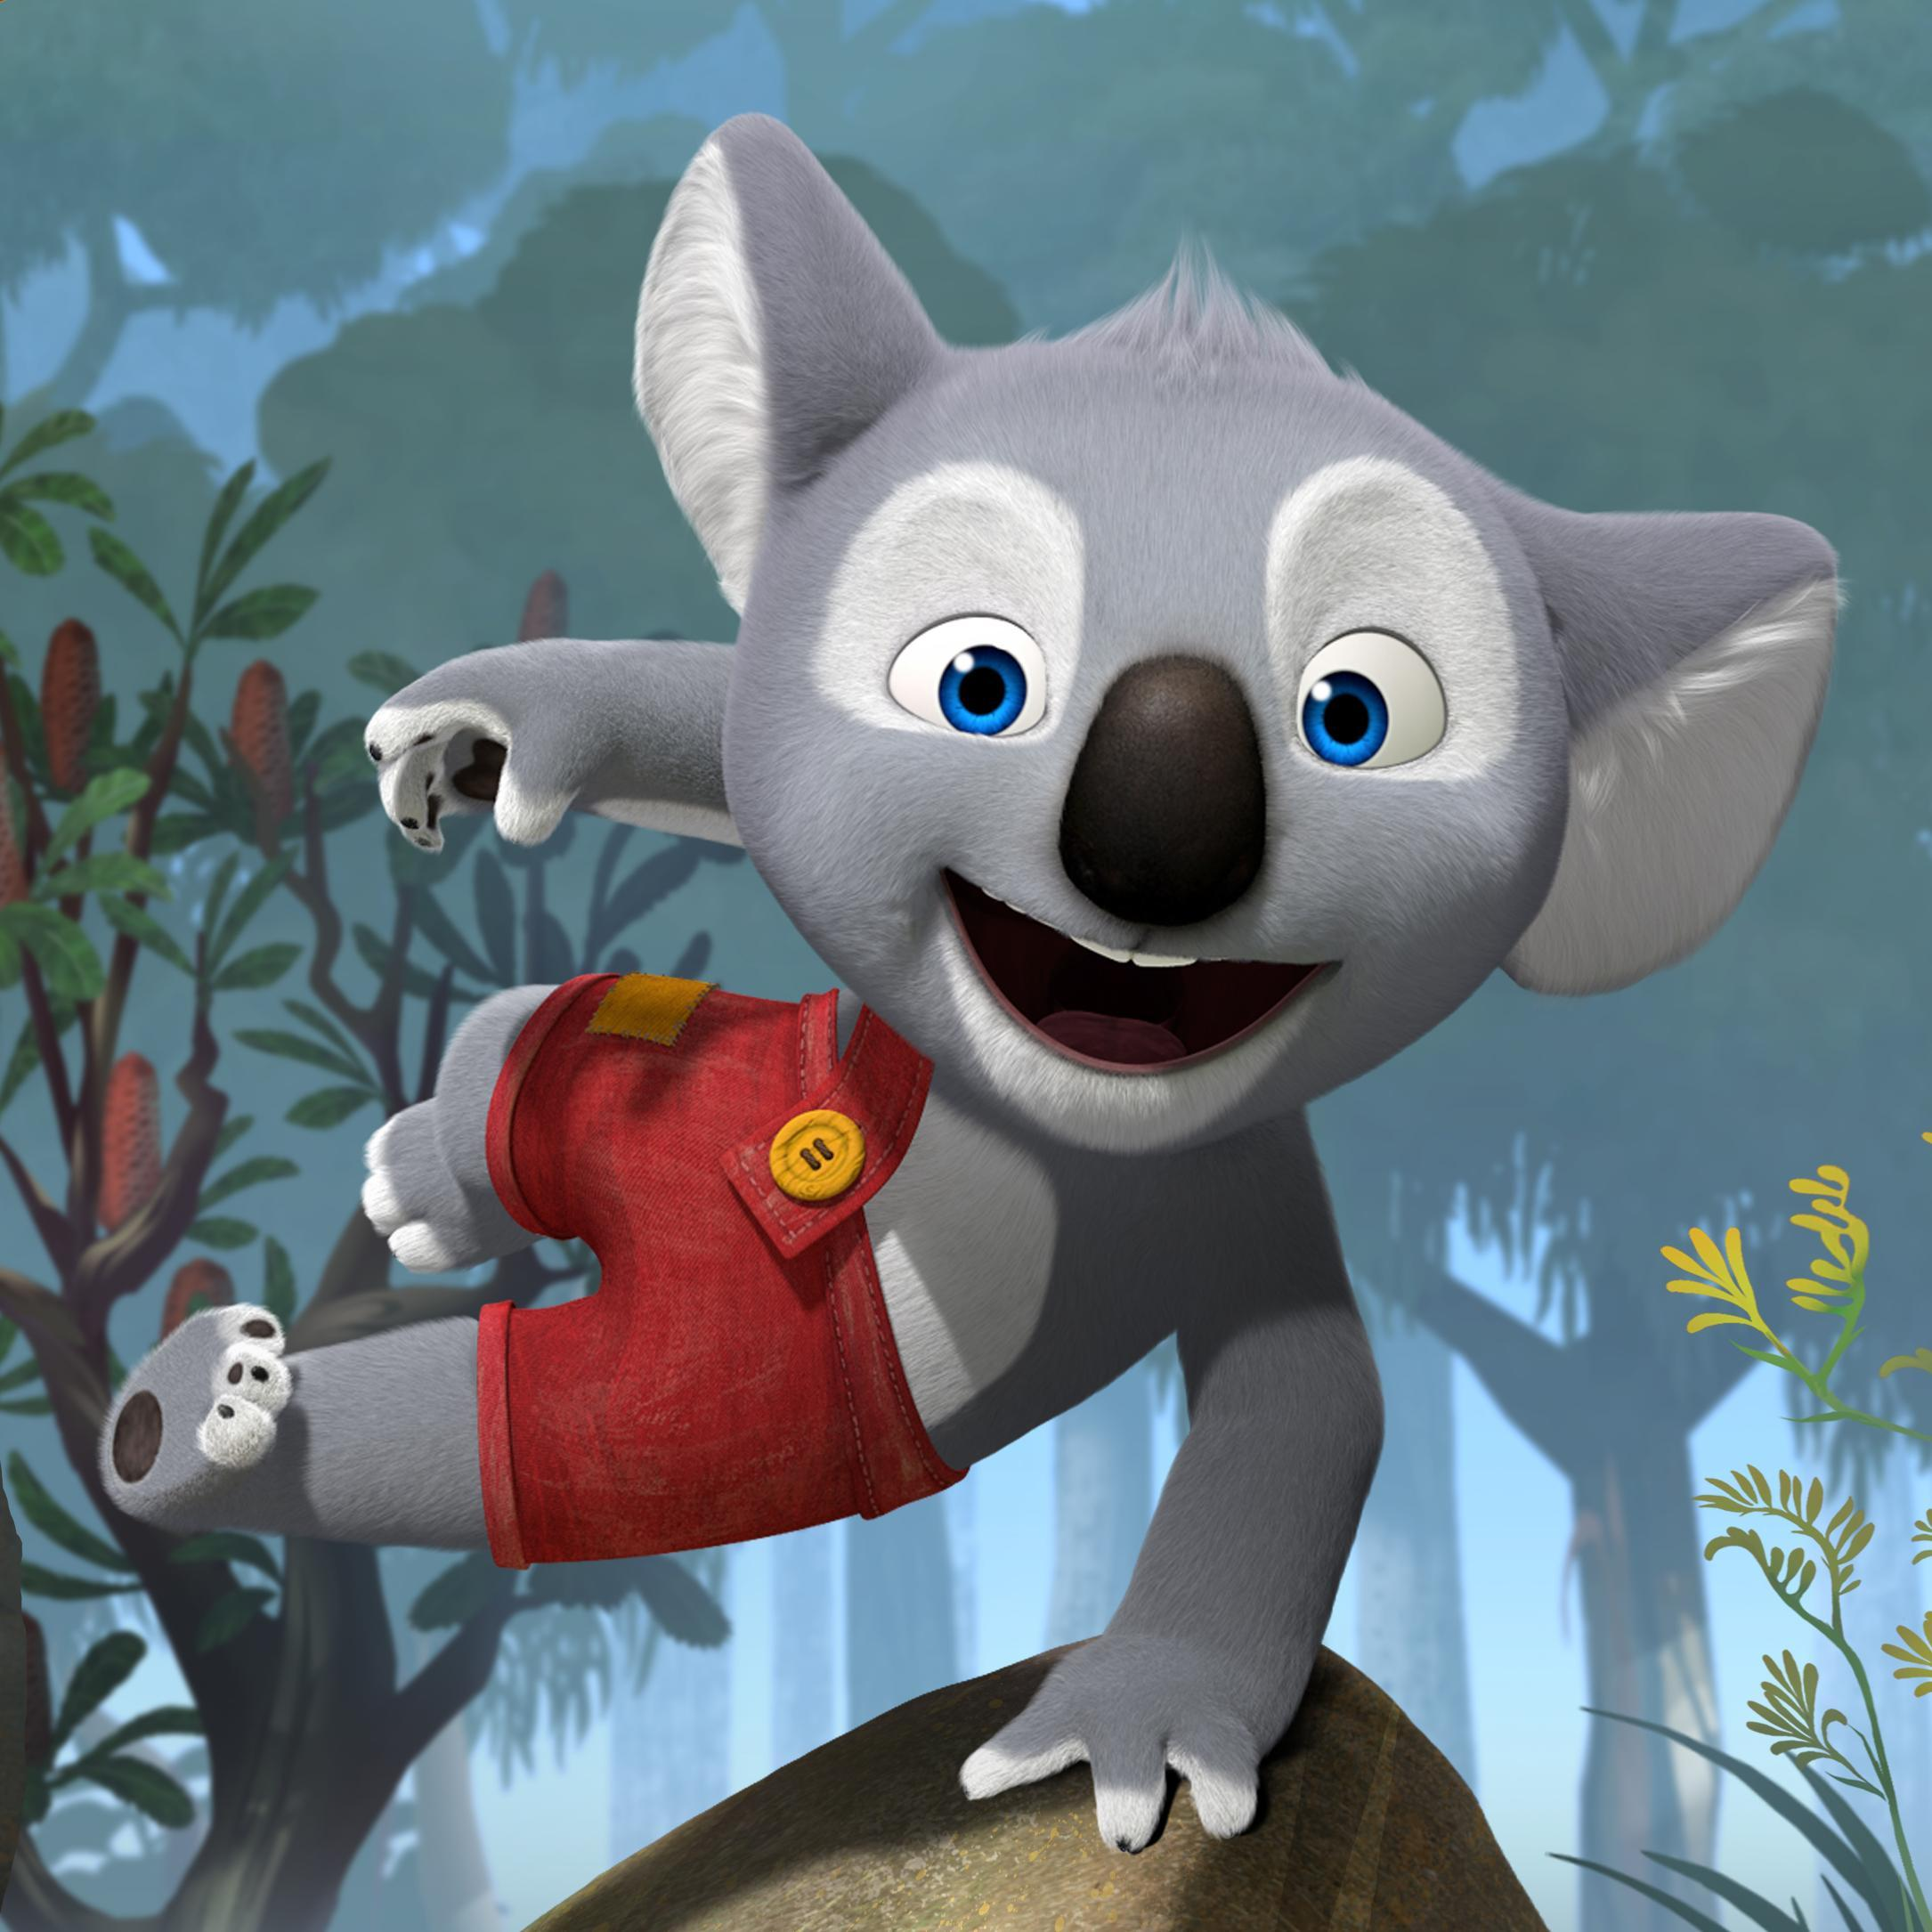 2170x2170 > Blinky Bill Wallpapers